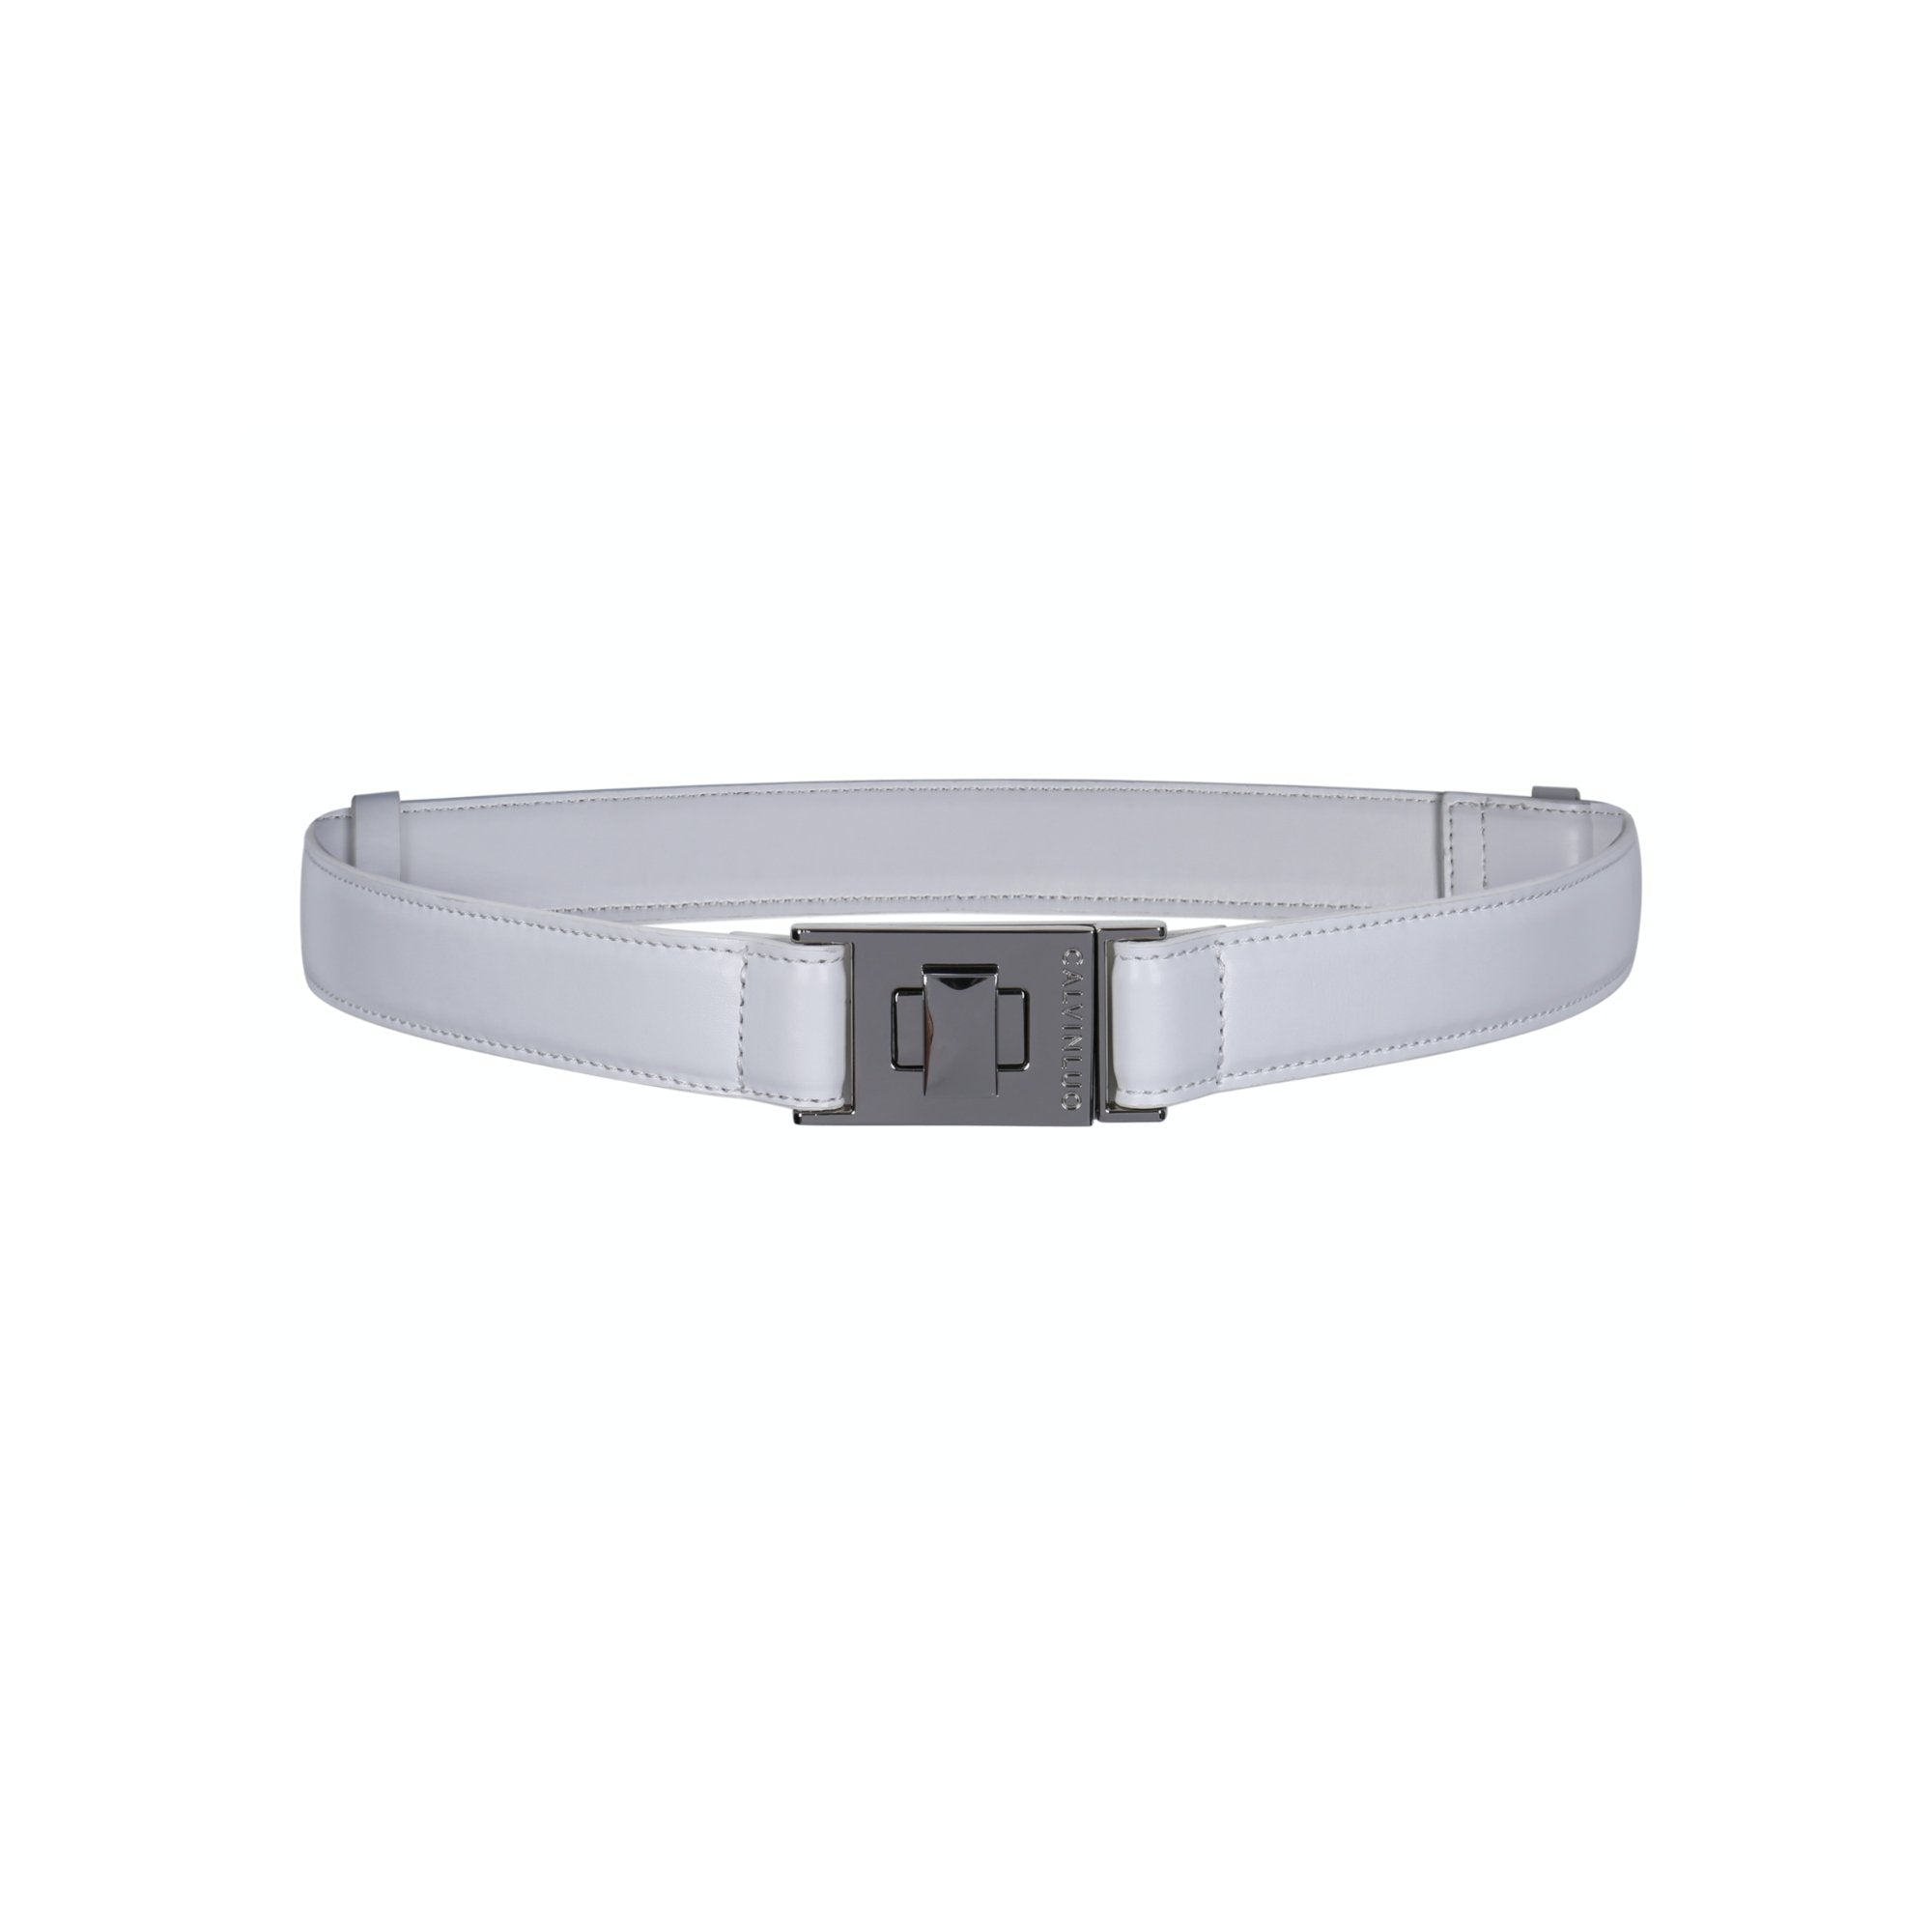 CALVIN LUO White Twist-Lock Leather Belt | MADA IN CHINA